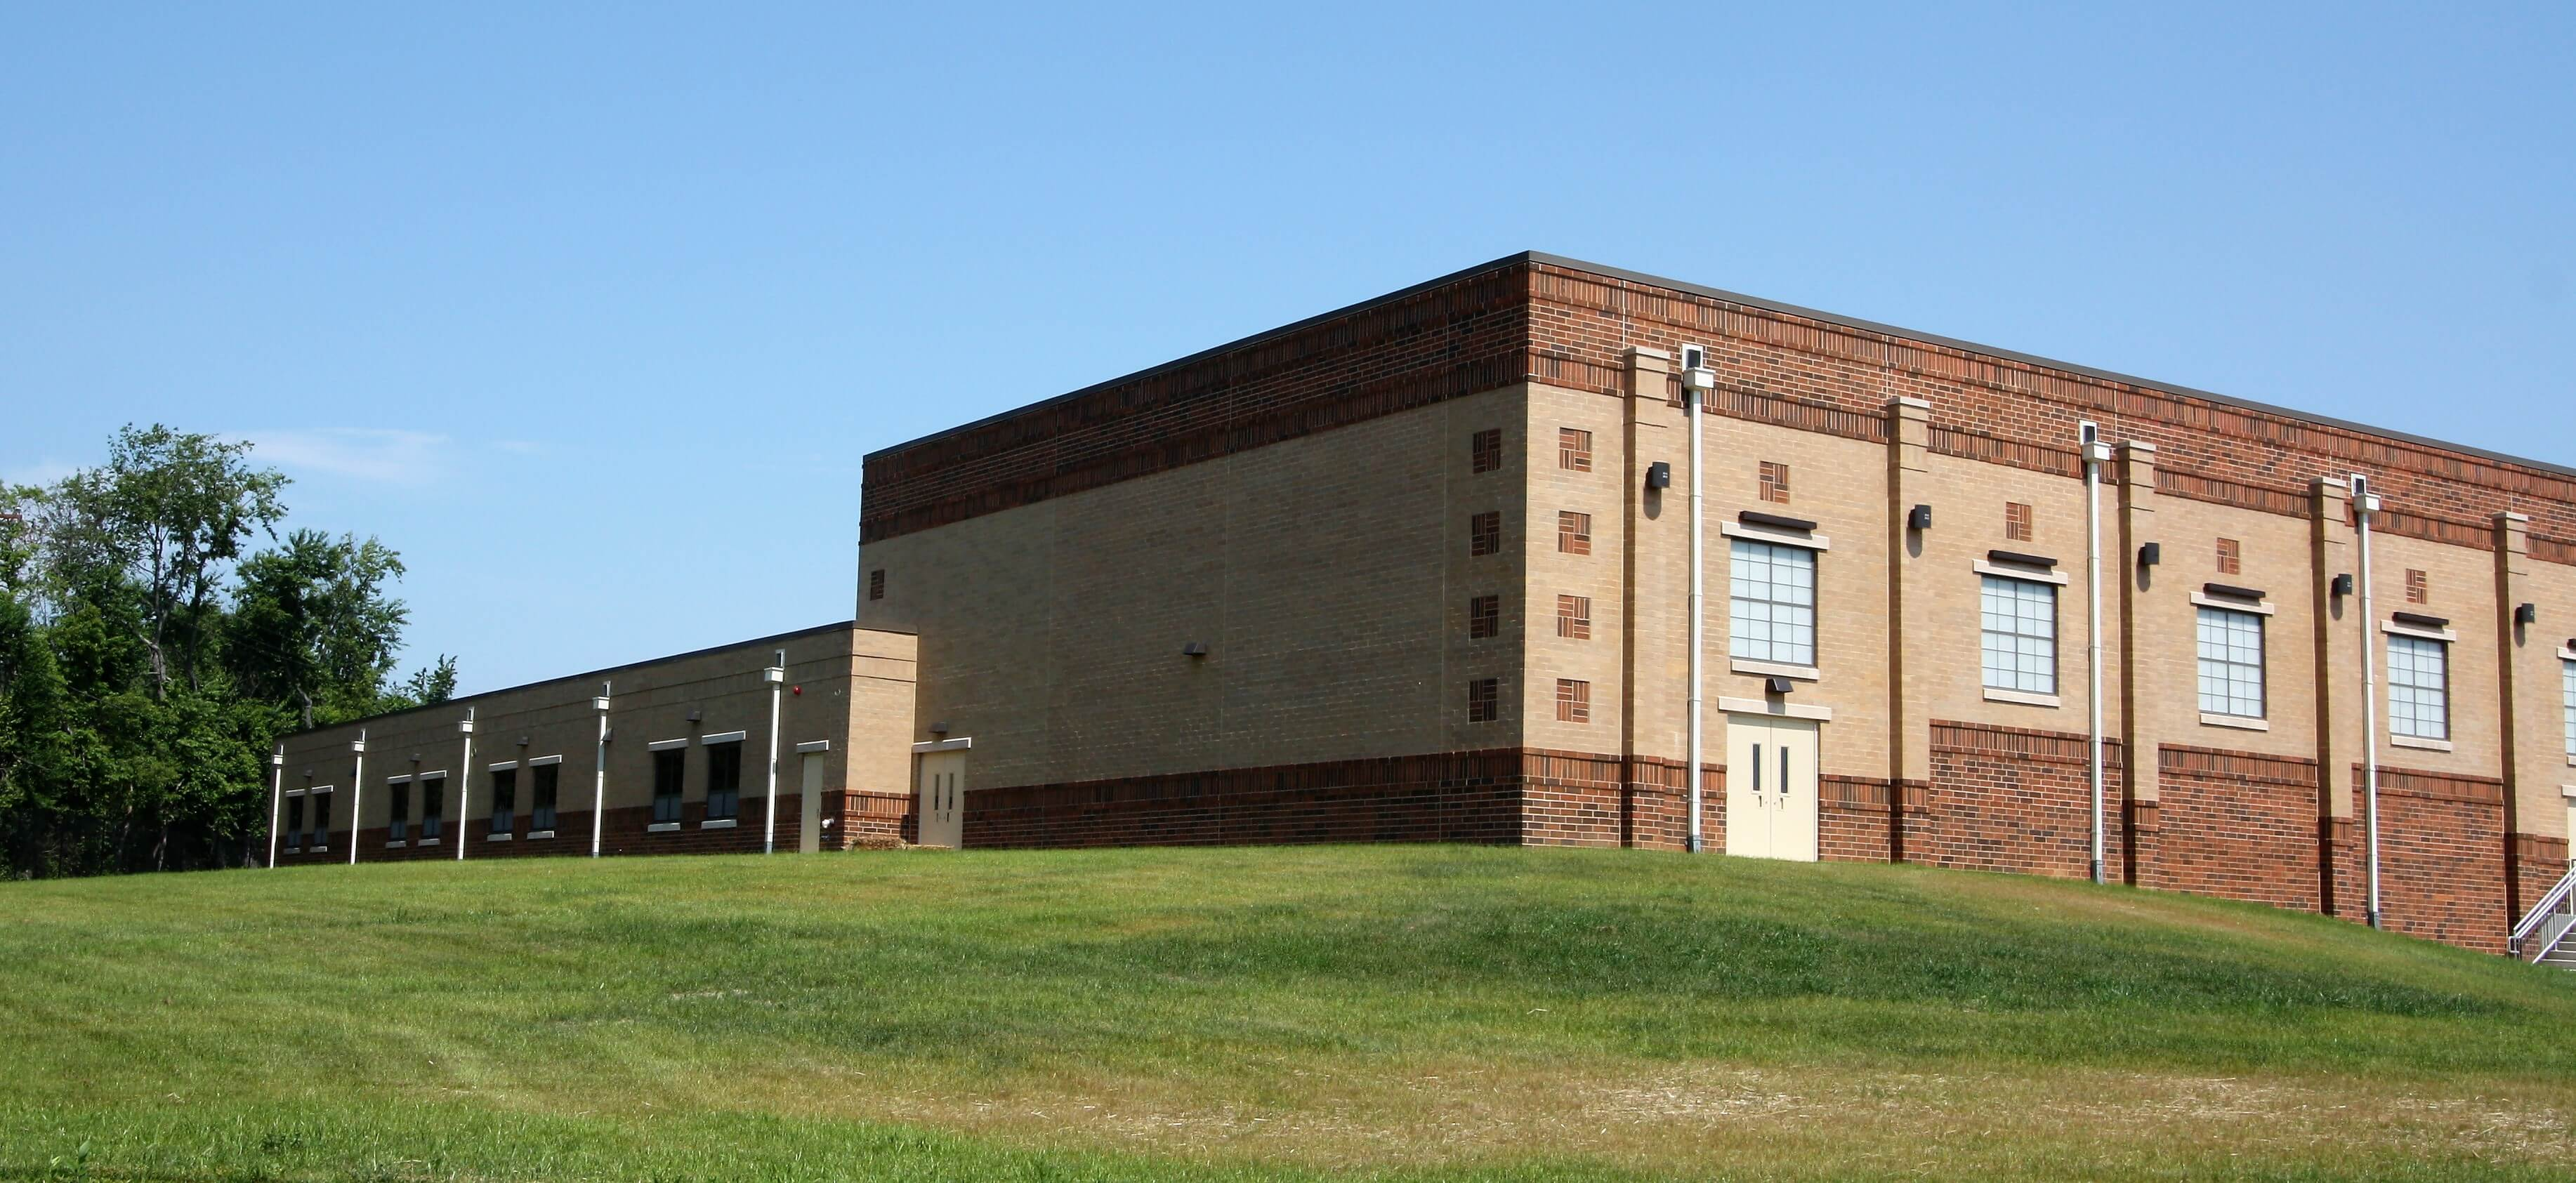 Winslow Twp. School